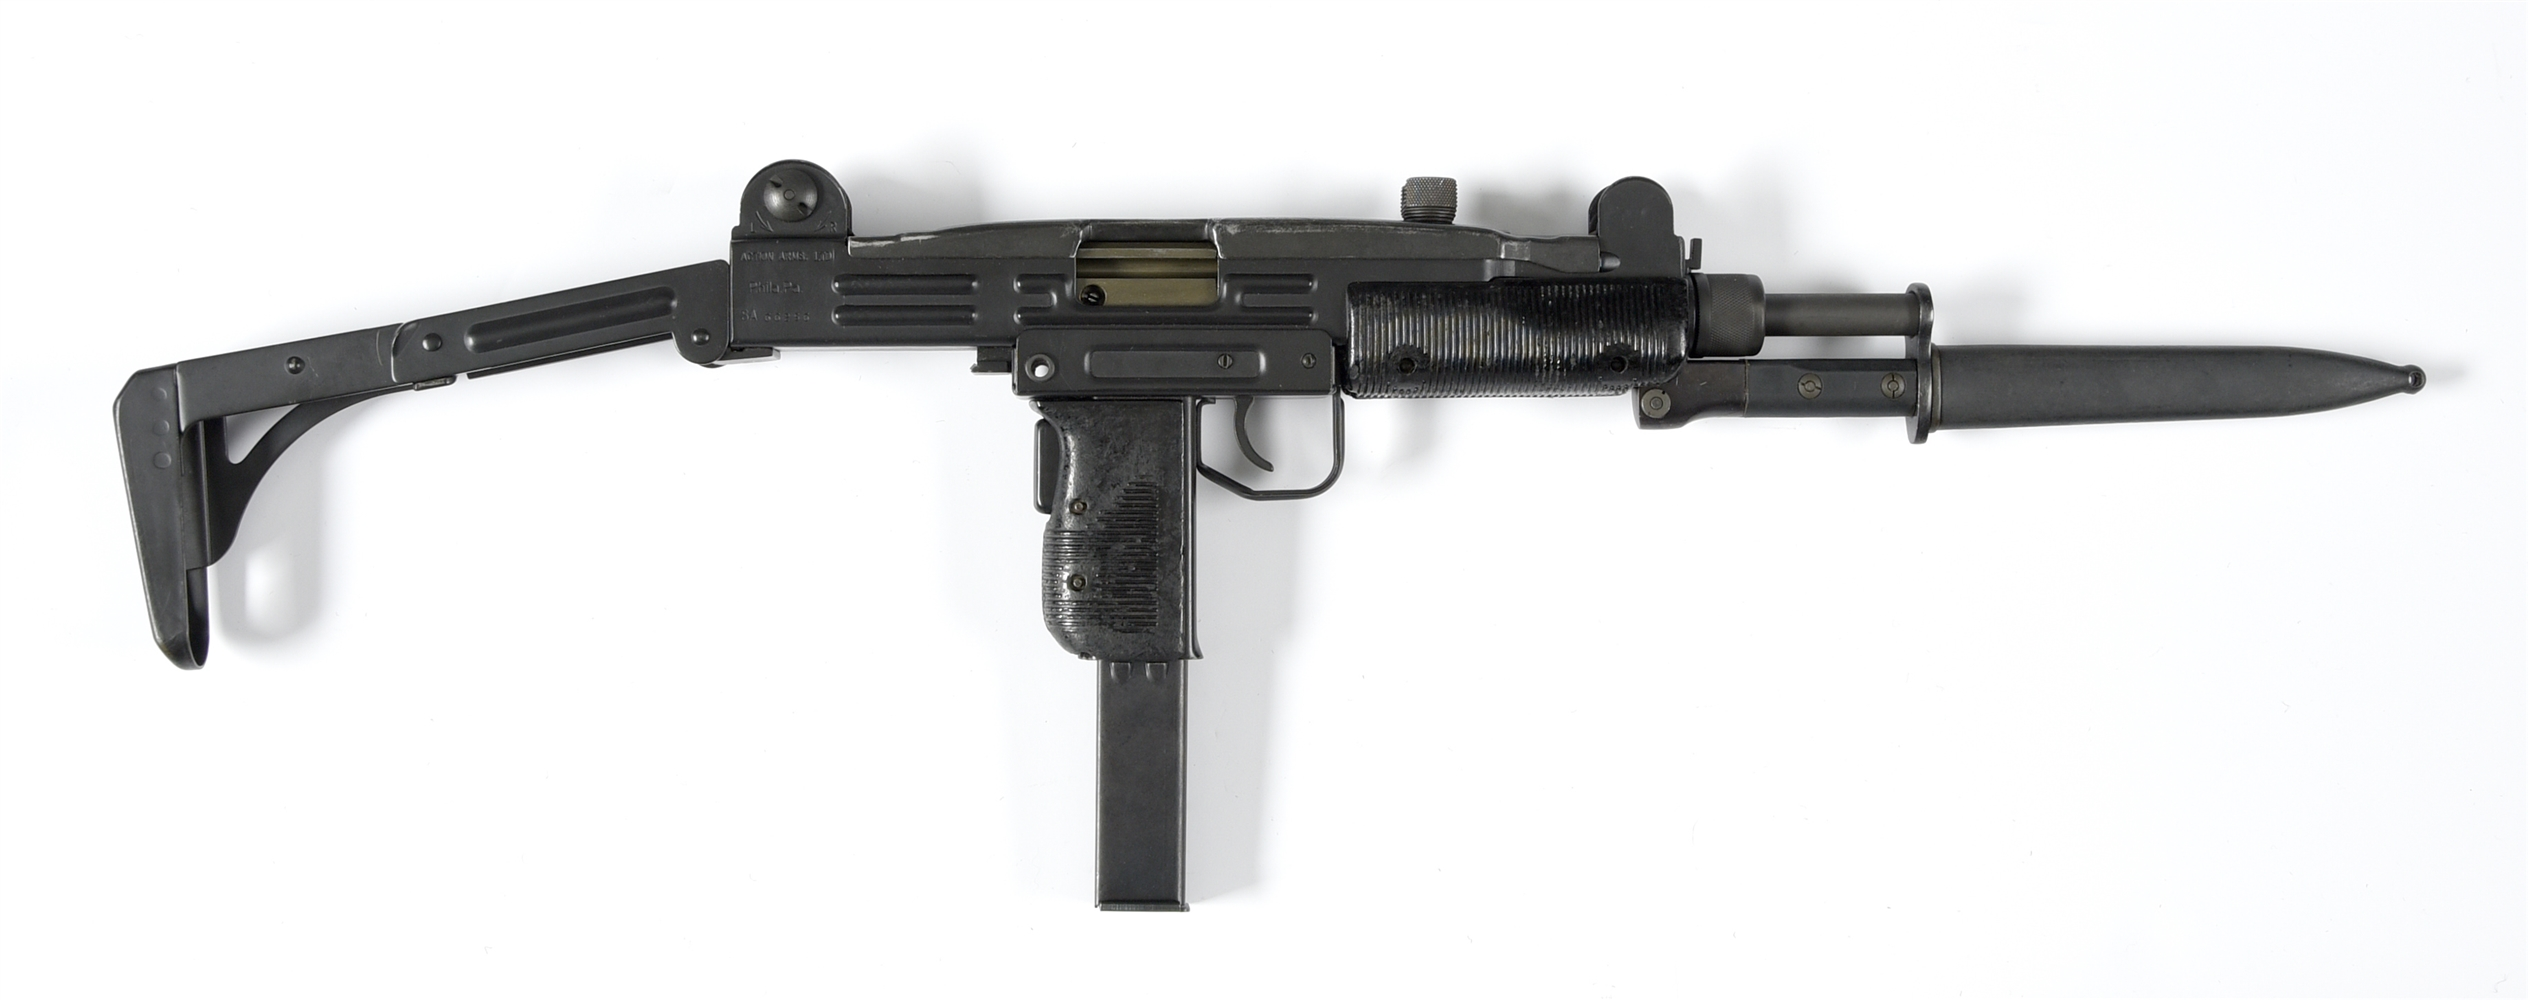 (N) LA FRANCE AUTO SEAR IN IMI UZI MODEL B HOST GUN MACHINE GUN WITH GEM TEC SUPPRESSOR AND ACCESSORIES (FULLY TRANSFERABLE).